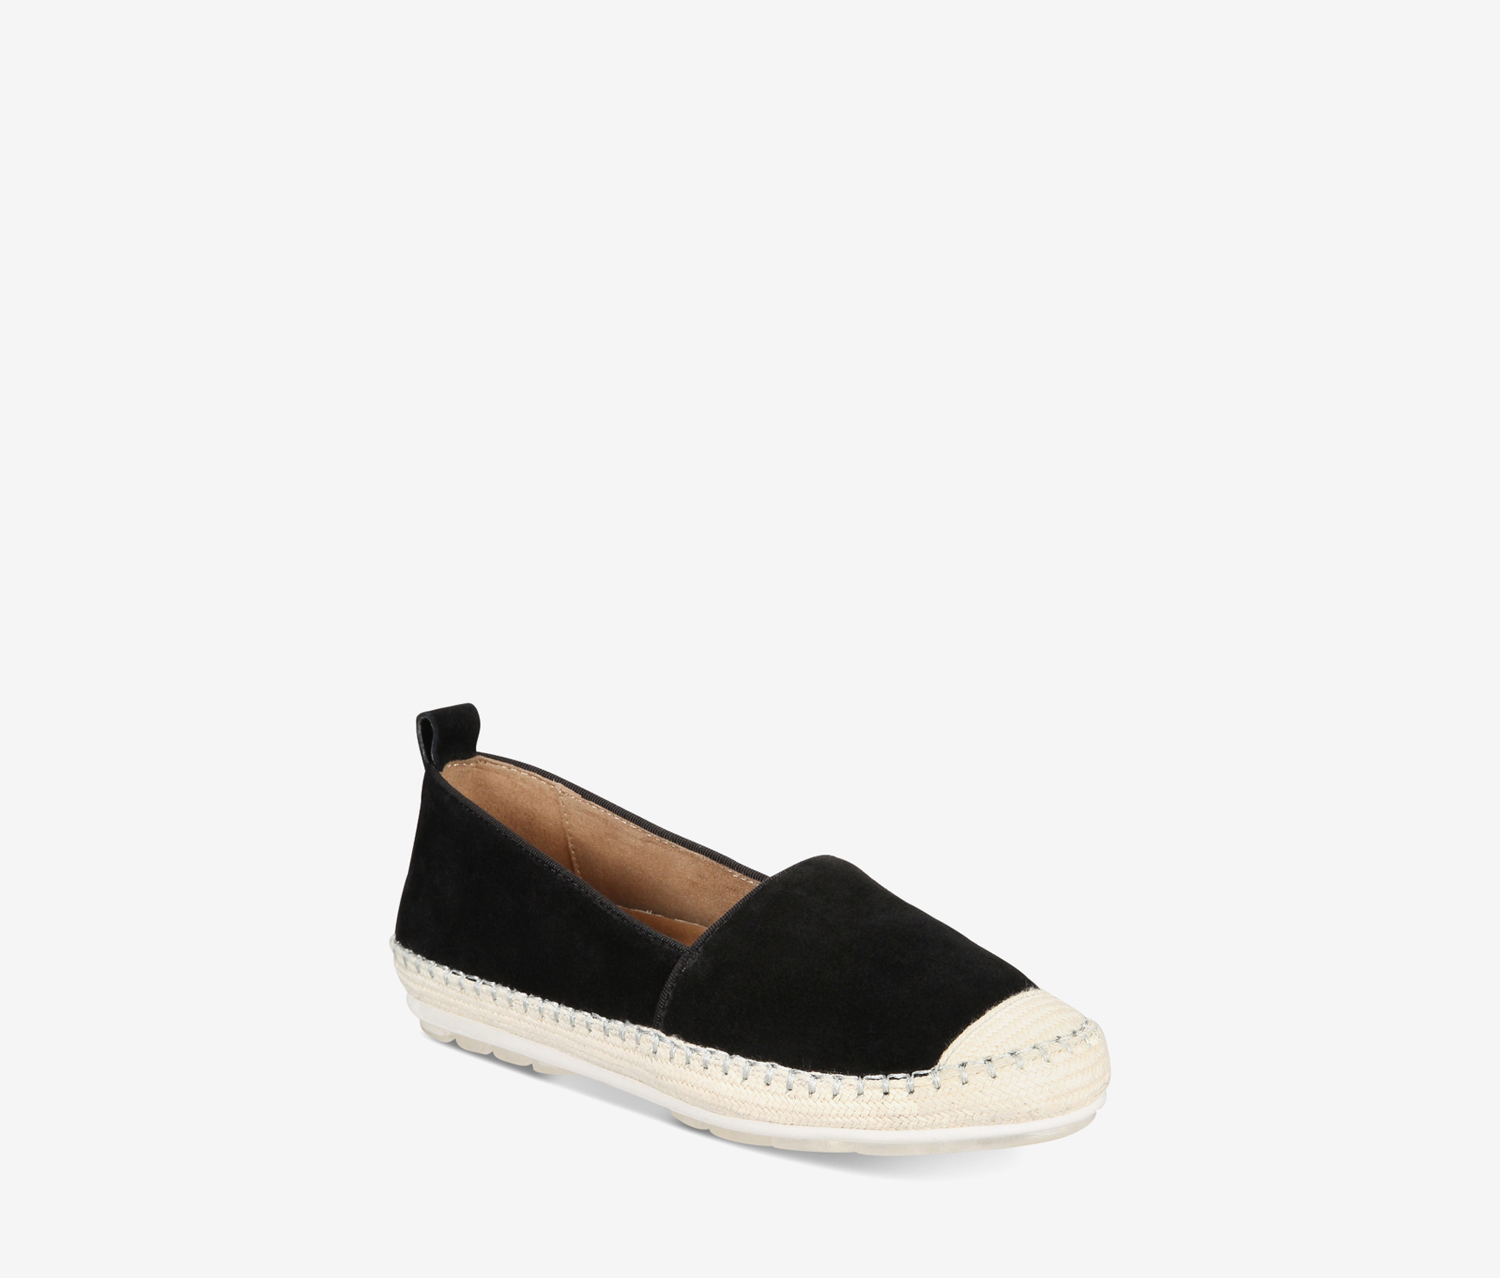 Women's Blink Waterproof Espadrilles, Black